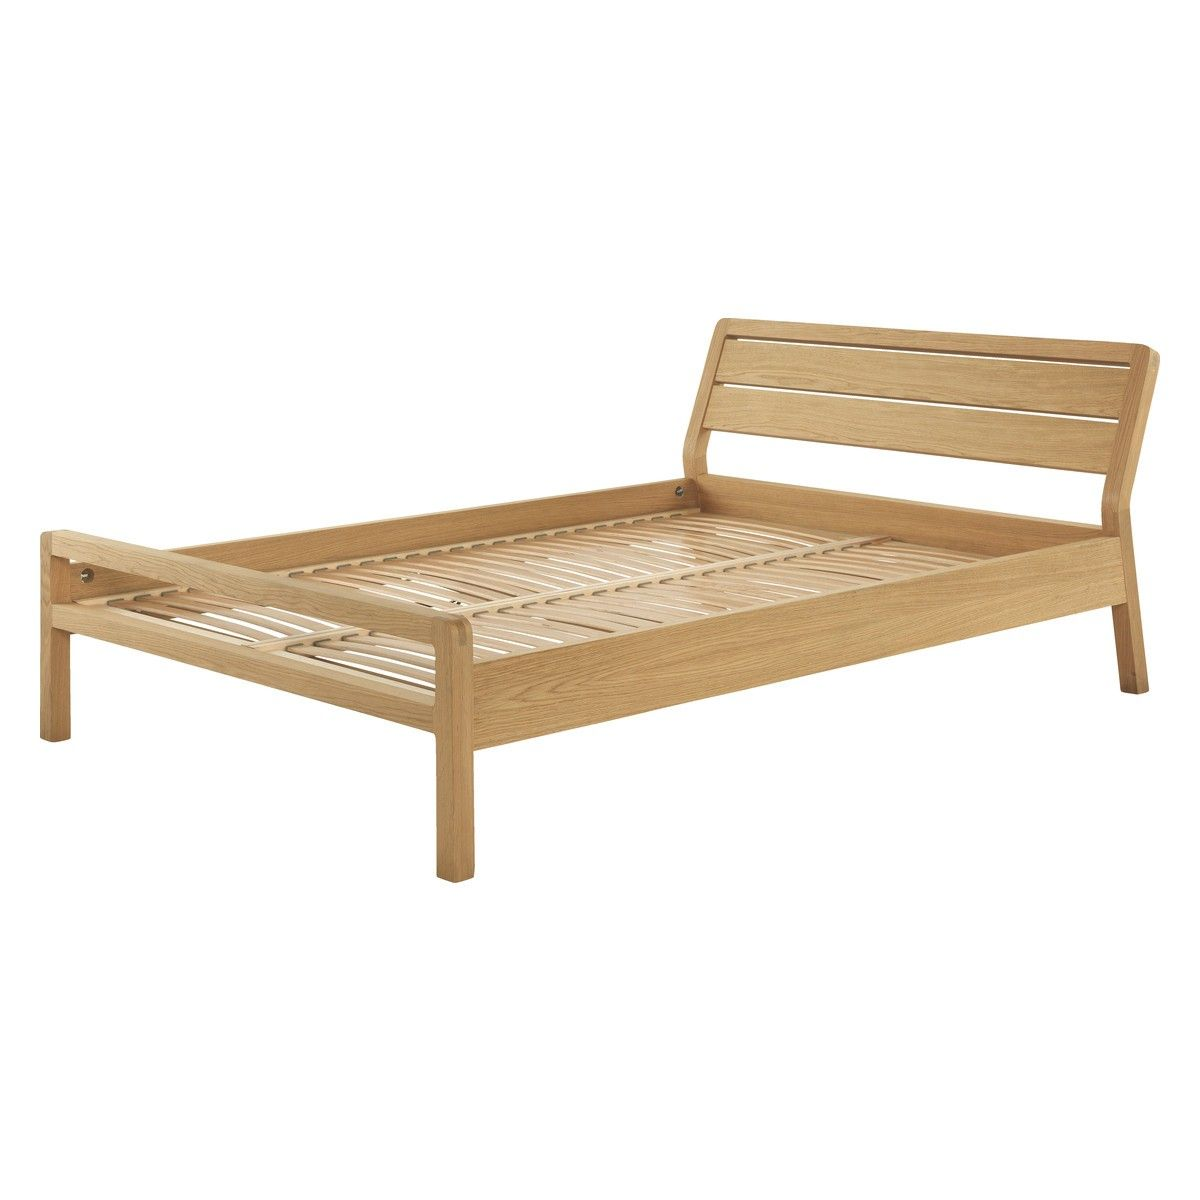 radius oak uk double bed 135cm boys bedrooms pinterest double